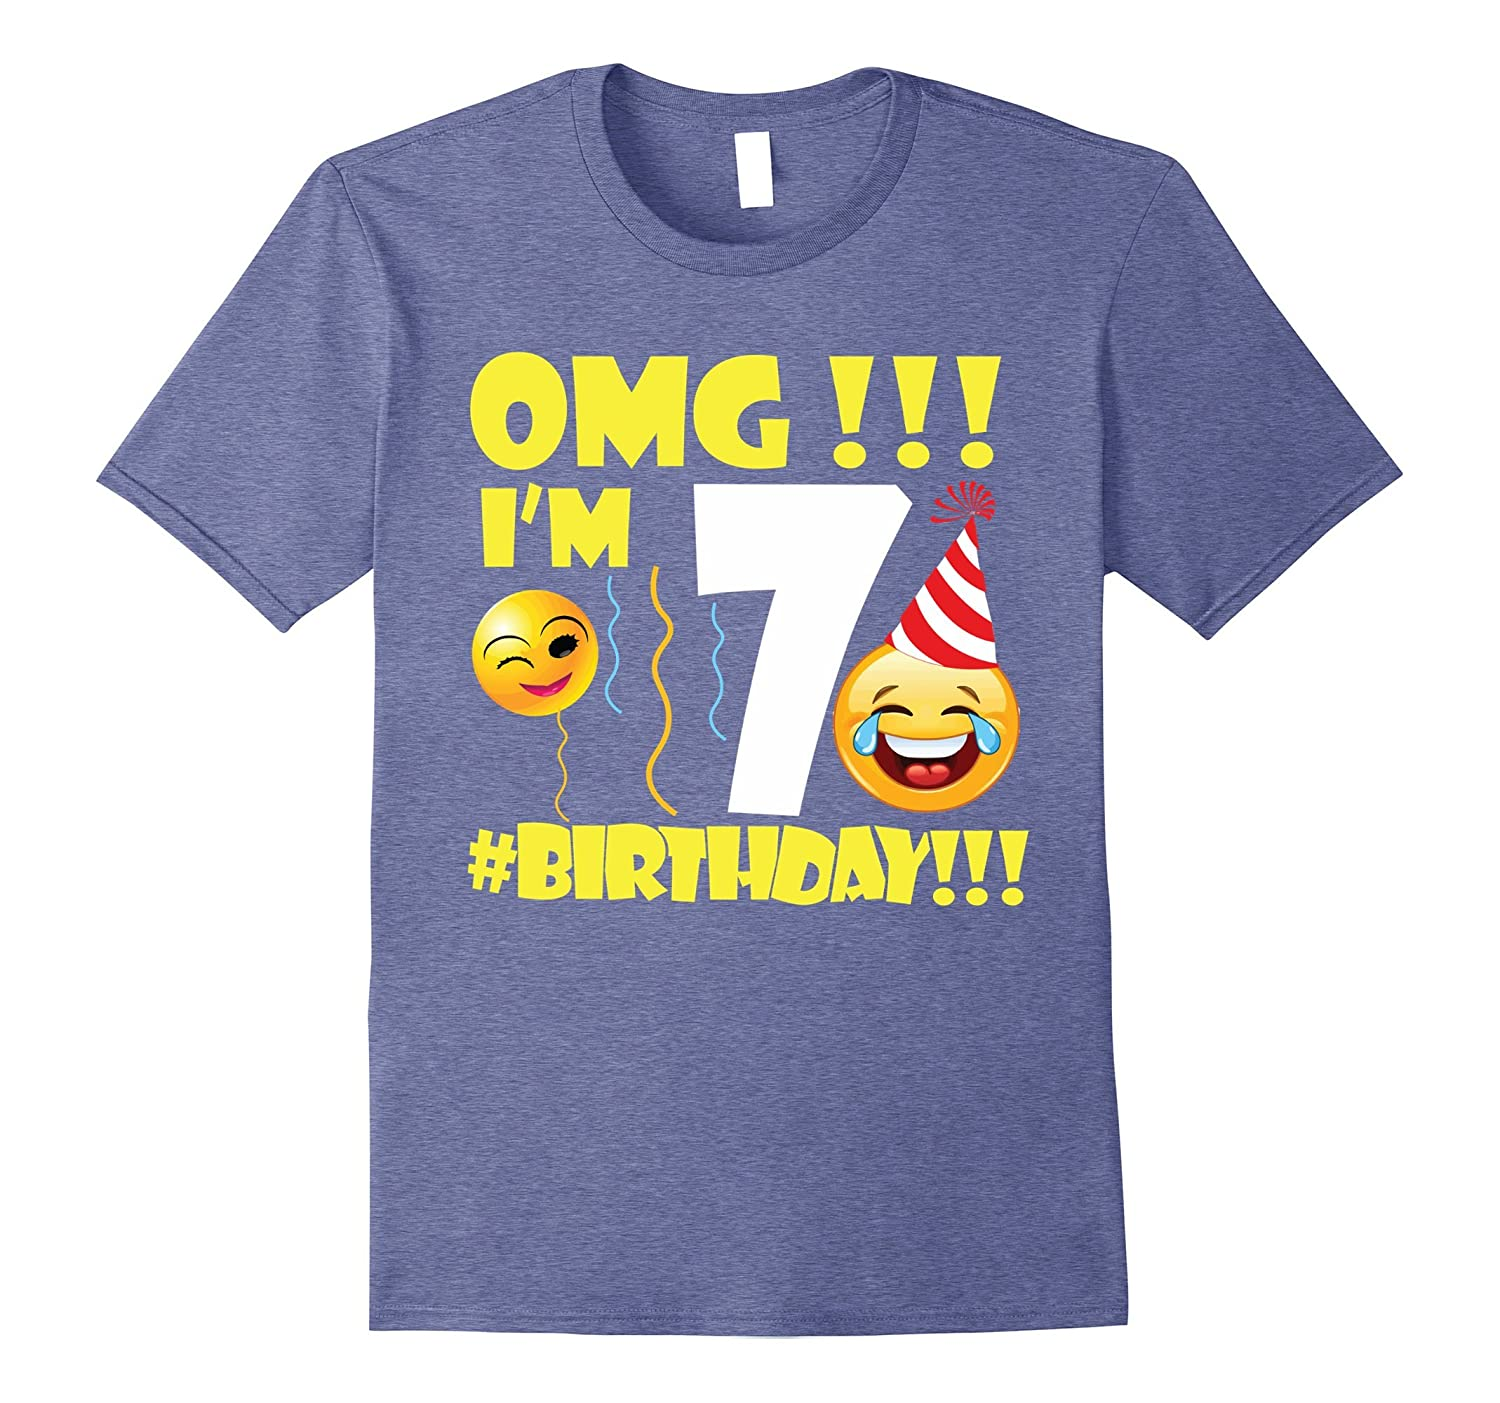 Emoji Birthday Shirt For 7 Year Old Party Girl Boy CL